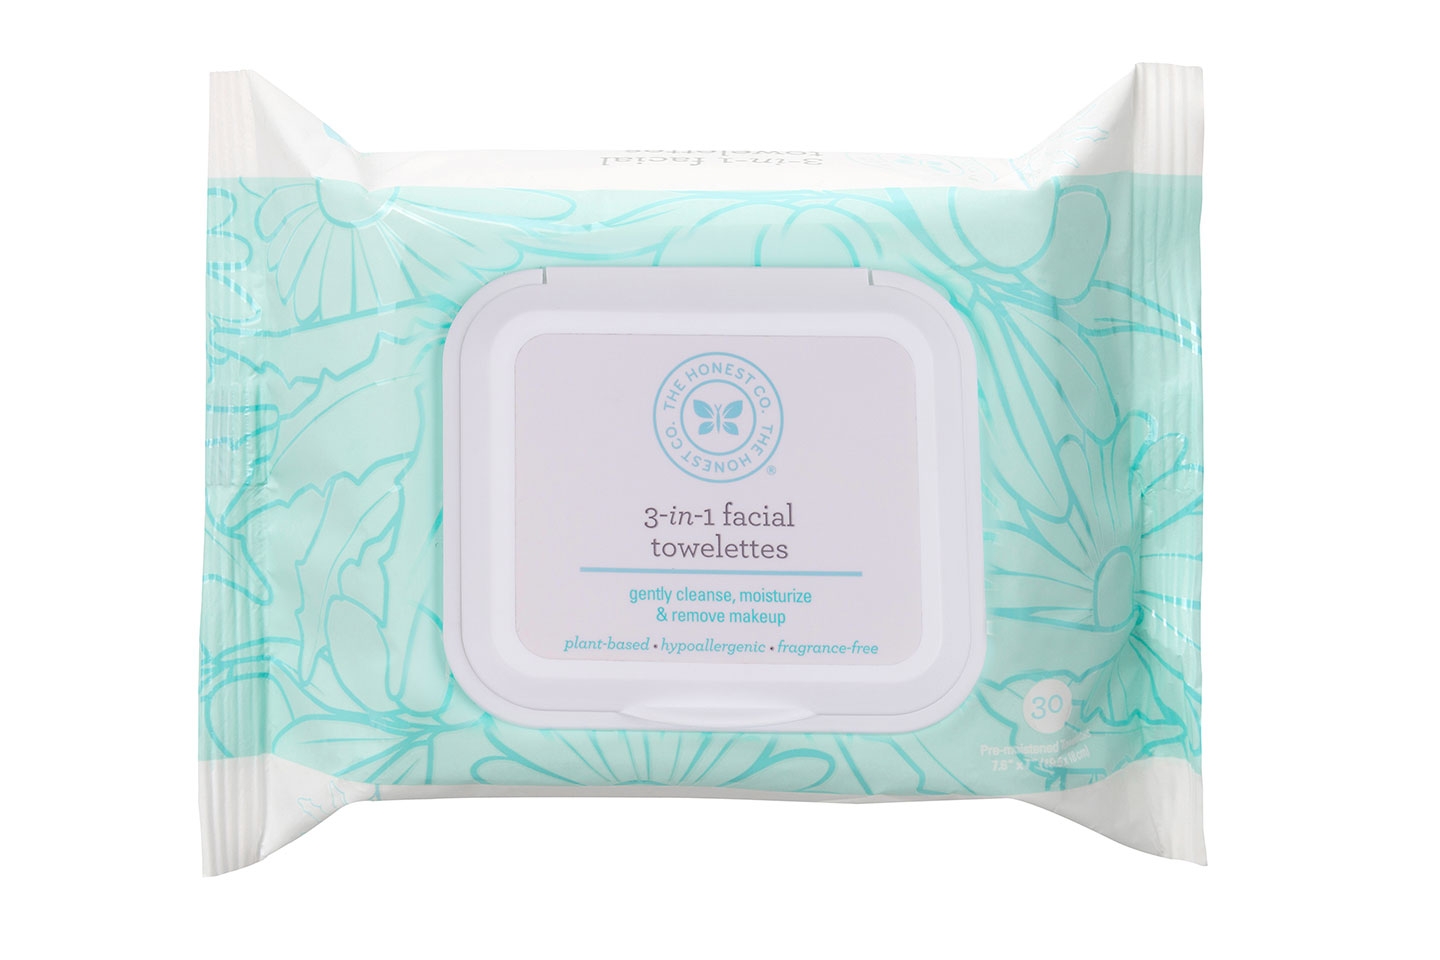 Infant Baby Rash On Face Face Wipes 3 In 1 Facial Towelettes The Honest Company